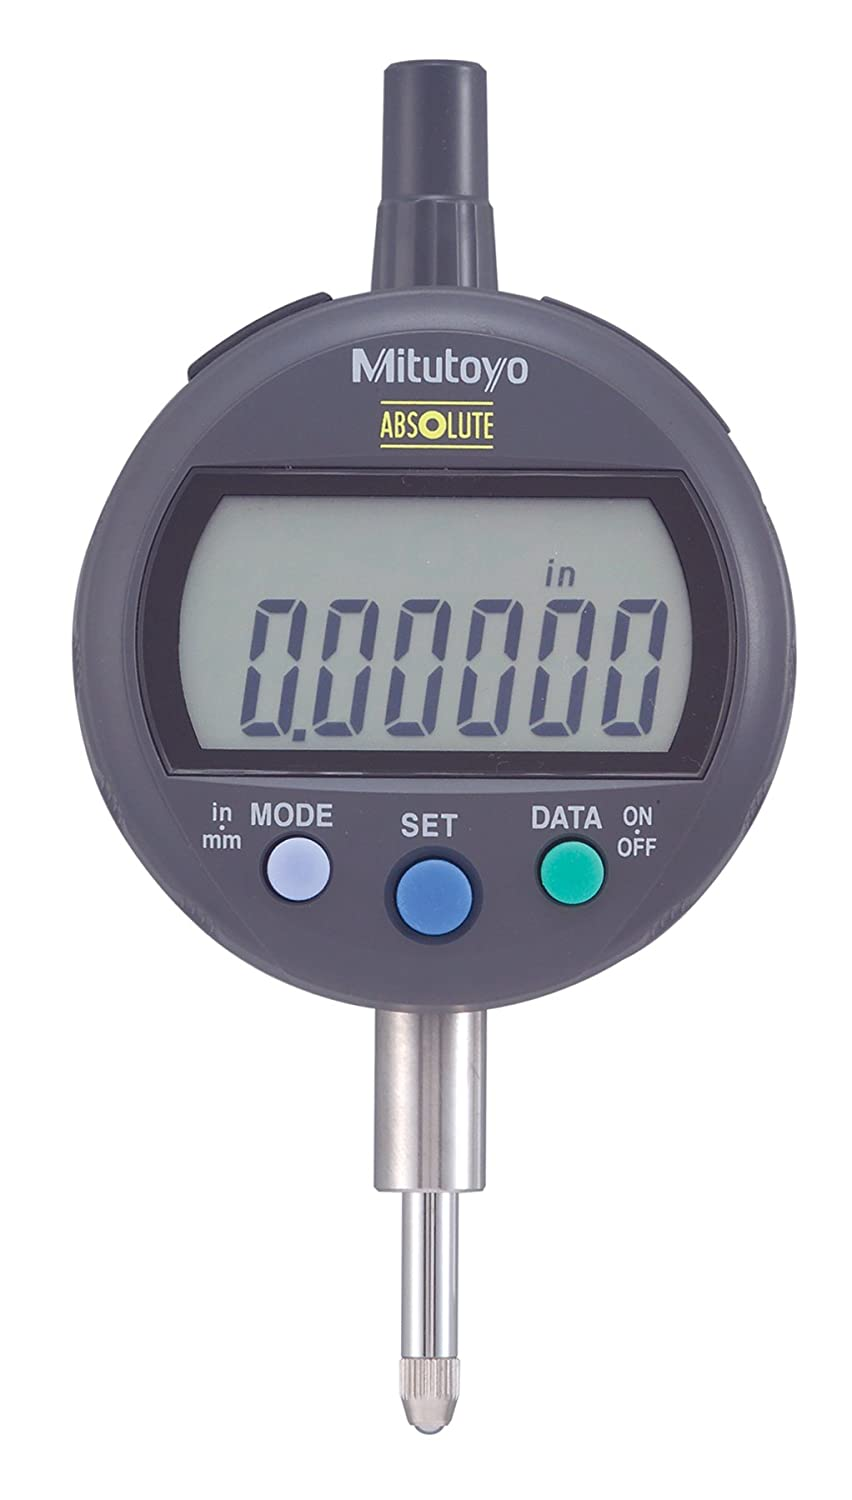 ABSOLUTE Digimatic Indicator ID-CX SERIES 543 — Standard Type